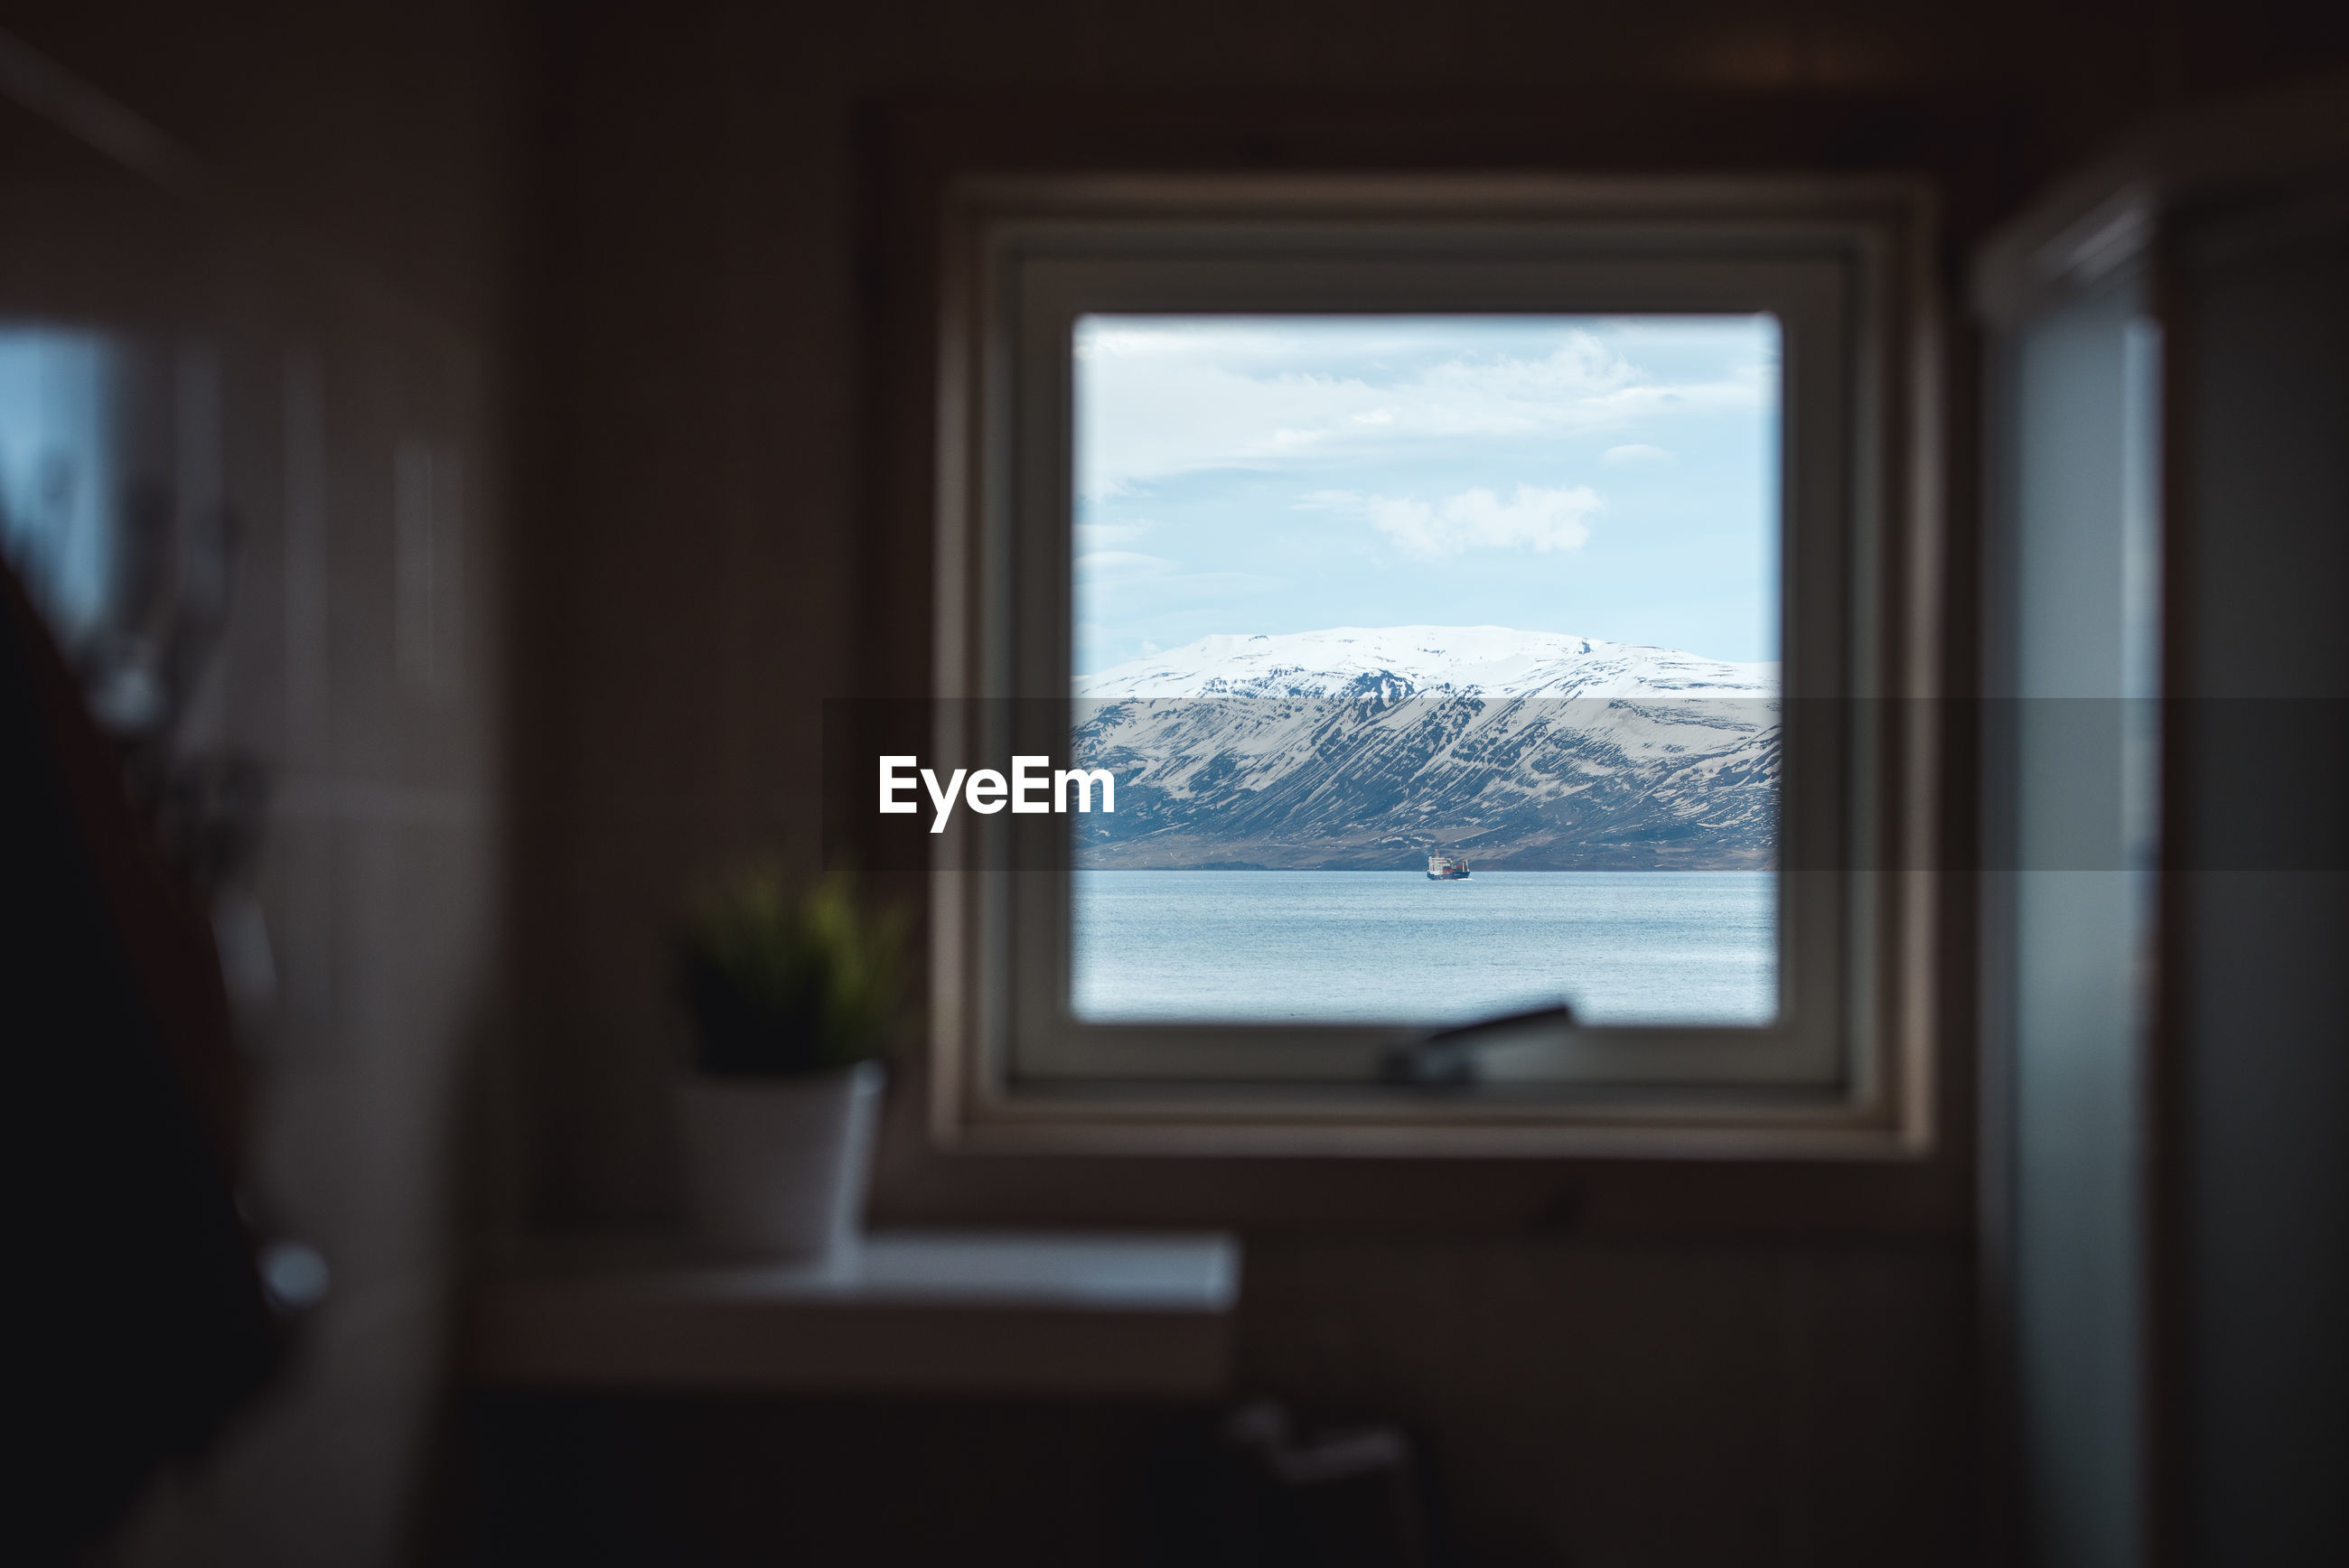 SNOW COVERED MOUNTAINS SEEN THROUGH WINDOW